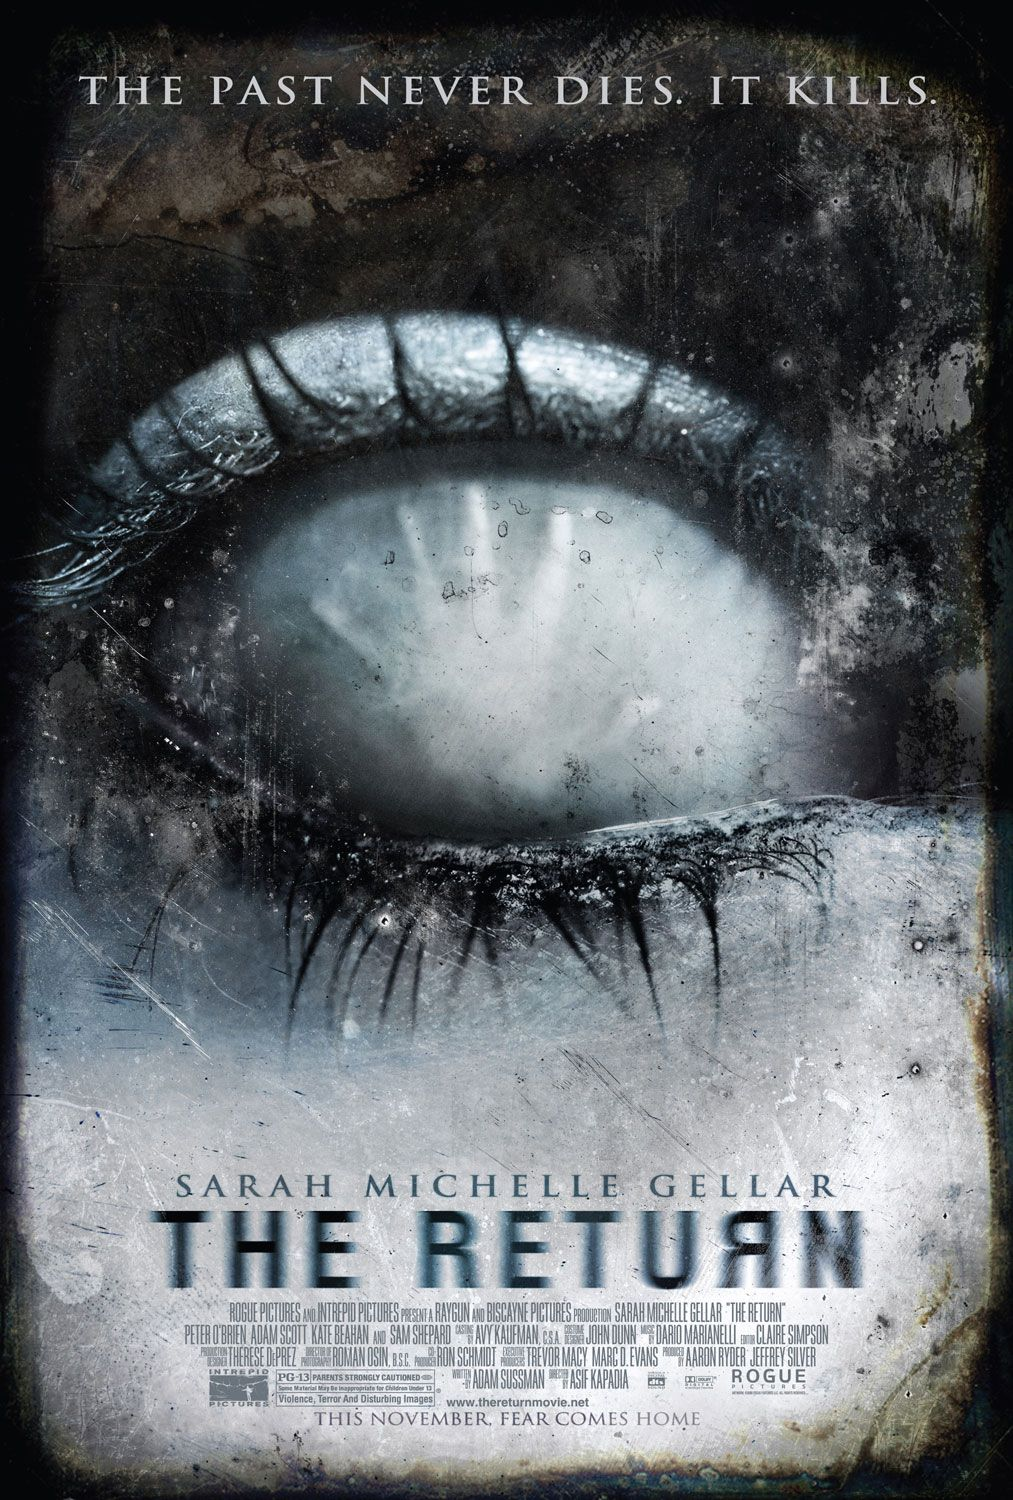 The Return (2006)